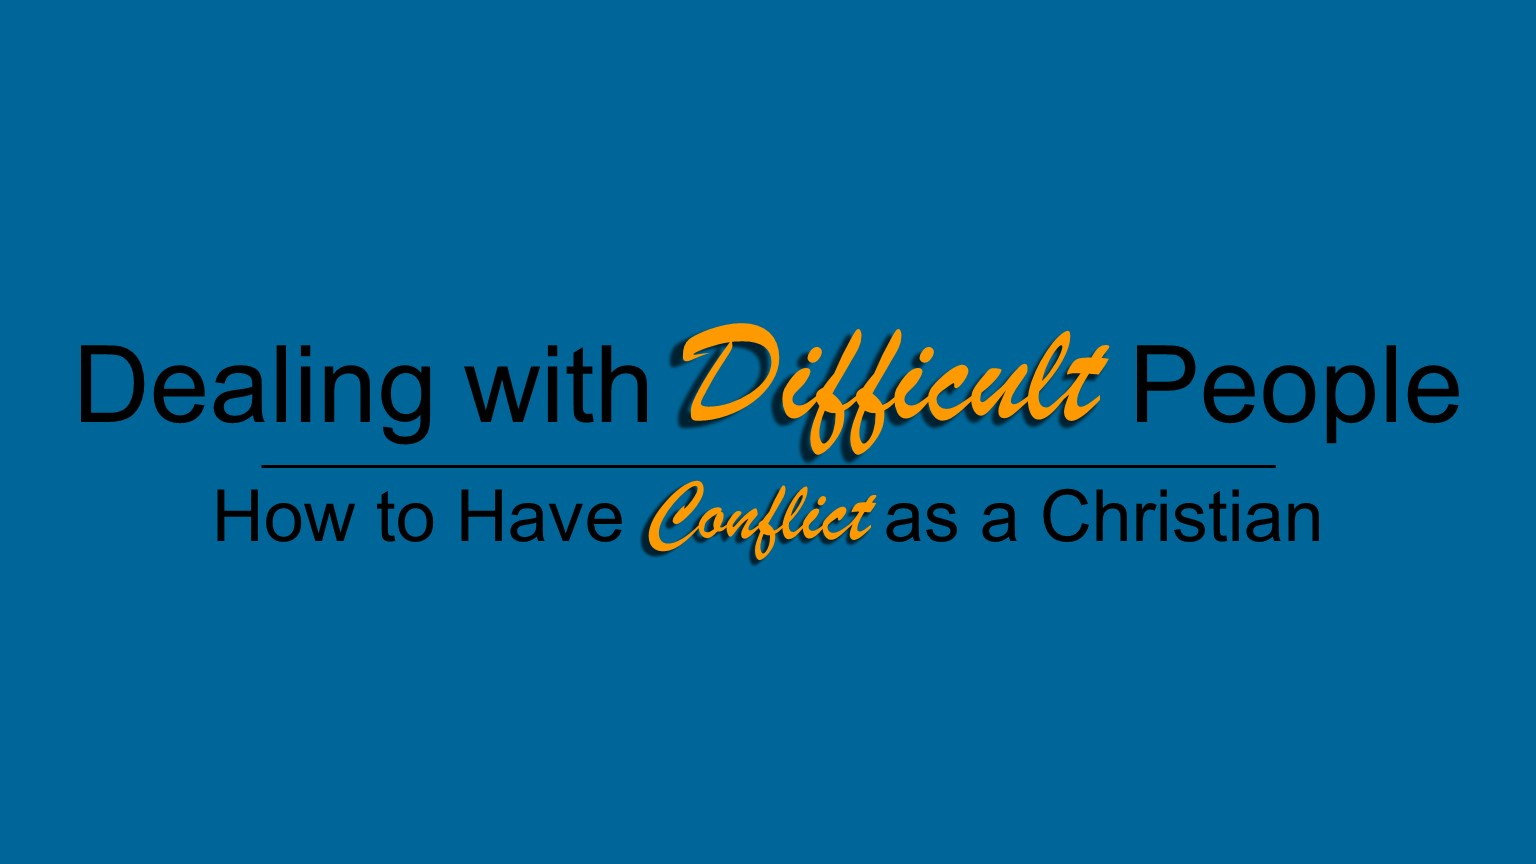 Dealing with Difficult People 2